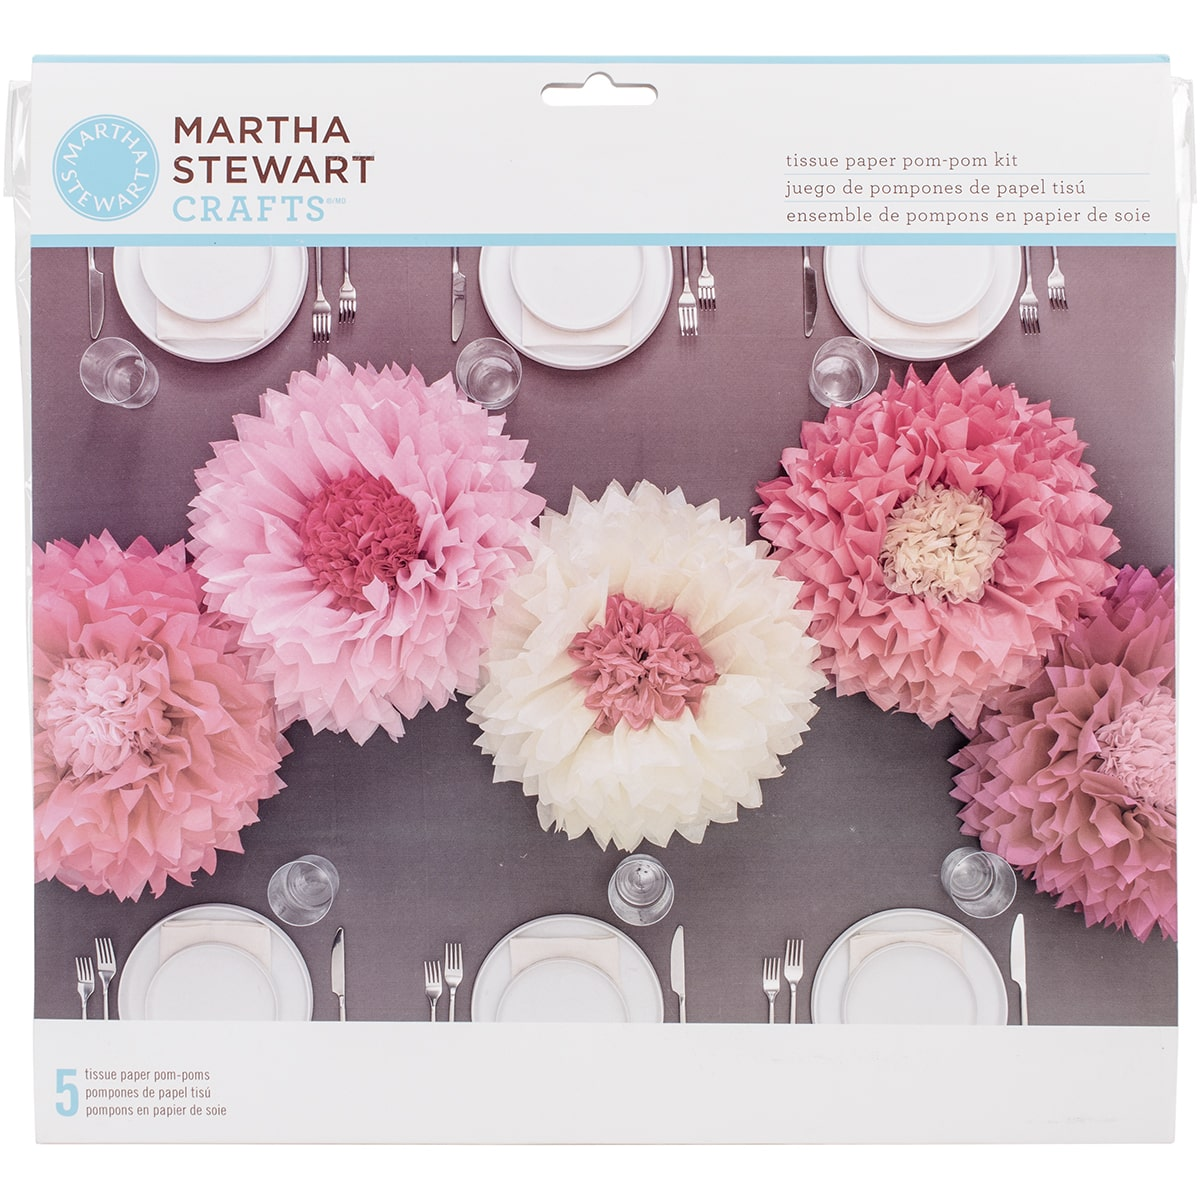 Paper flower kits martha stewart akbaeenw paper flower kits martha stewart martha stewart crafts red tissue paper flower kit holiday mightylinksfo